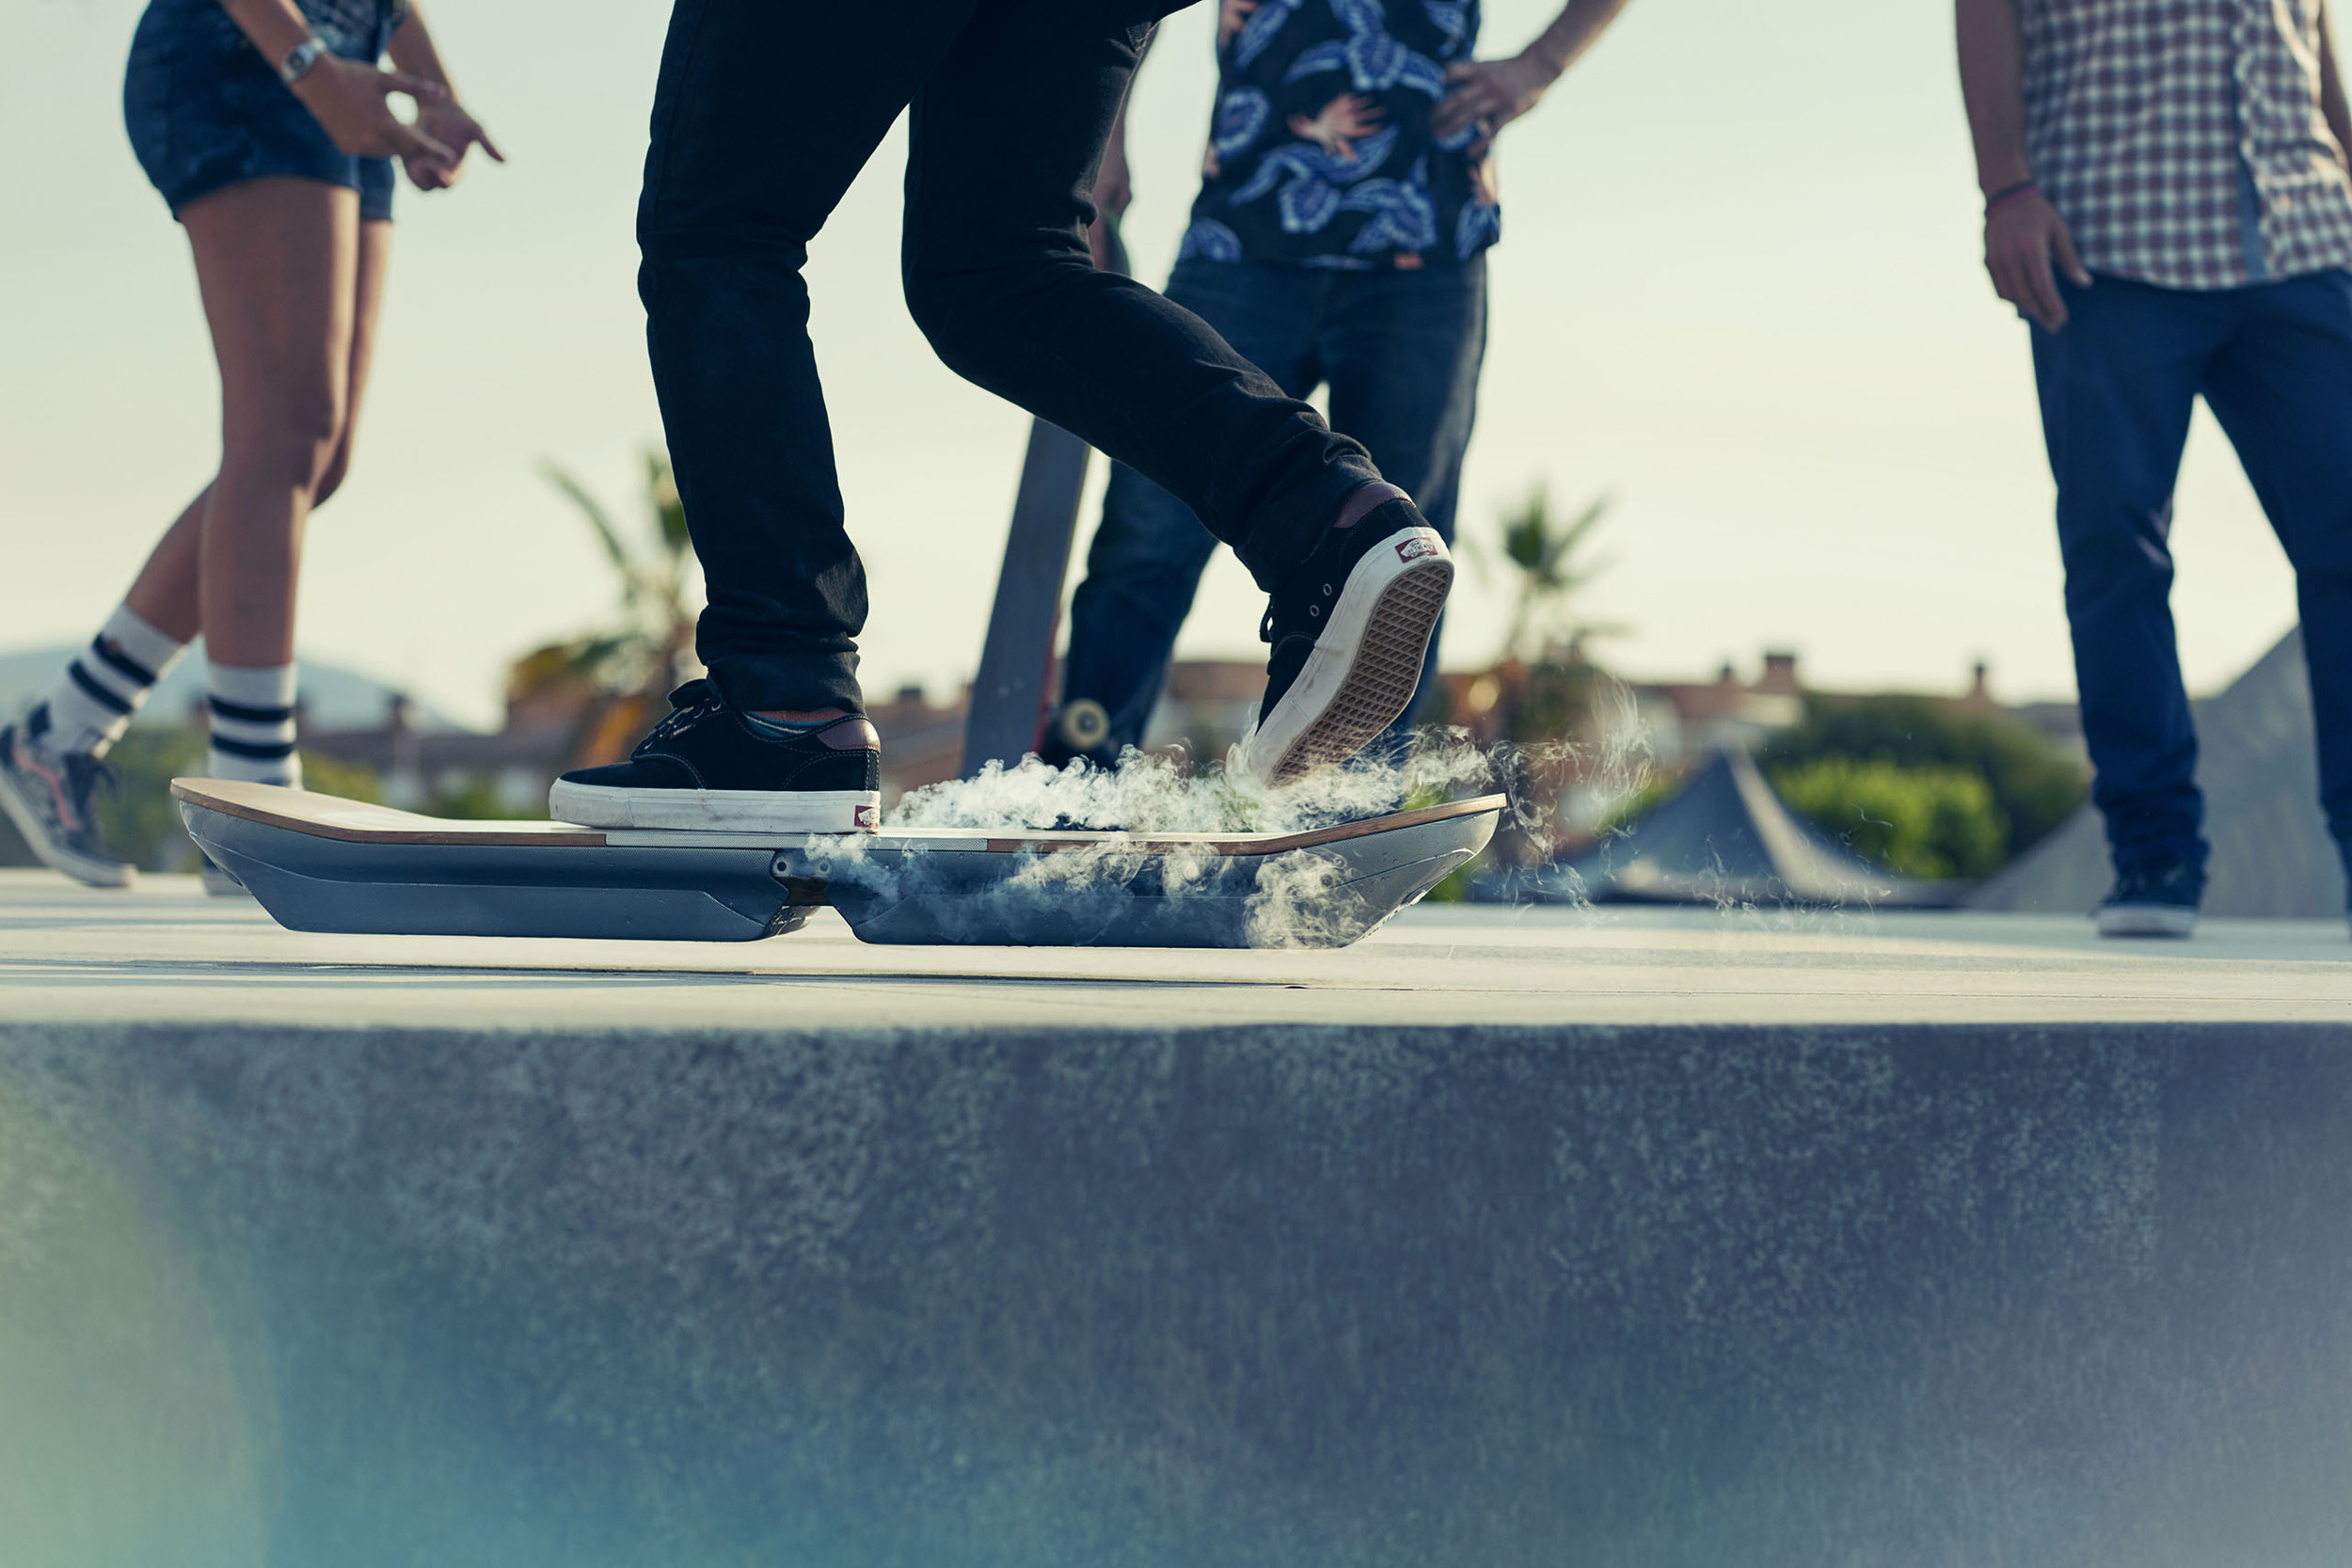 Lexus reveals fully functioning hoverboard